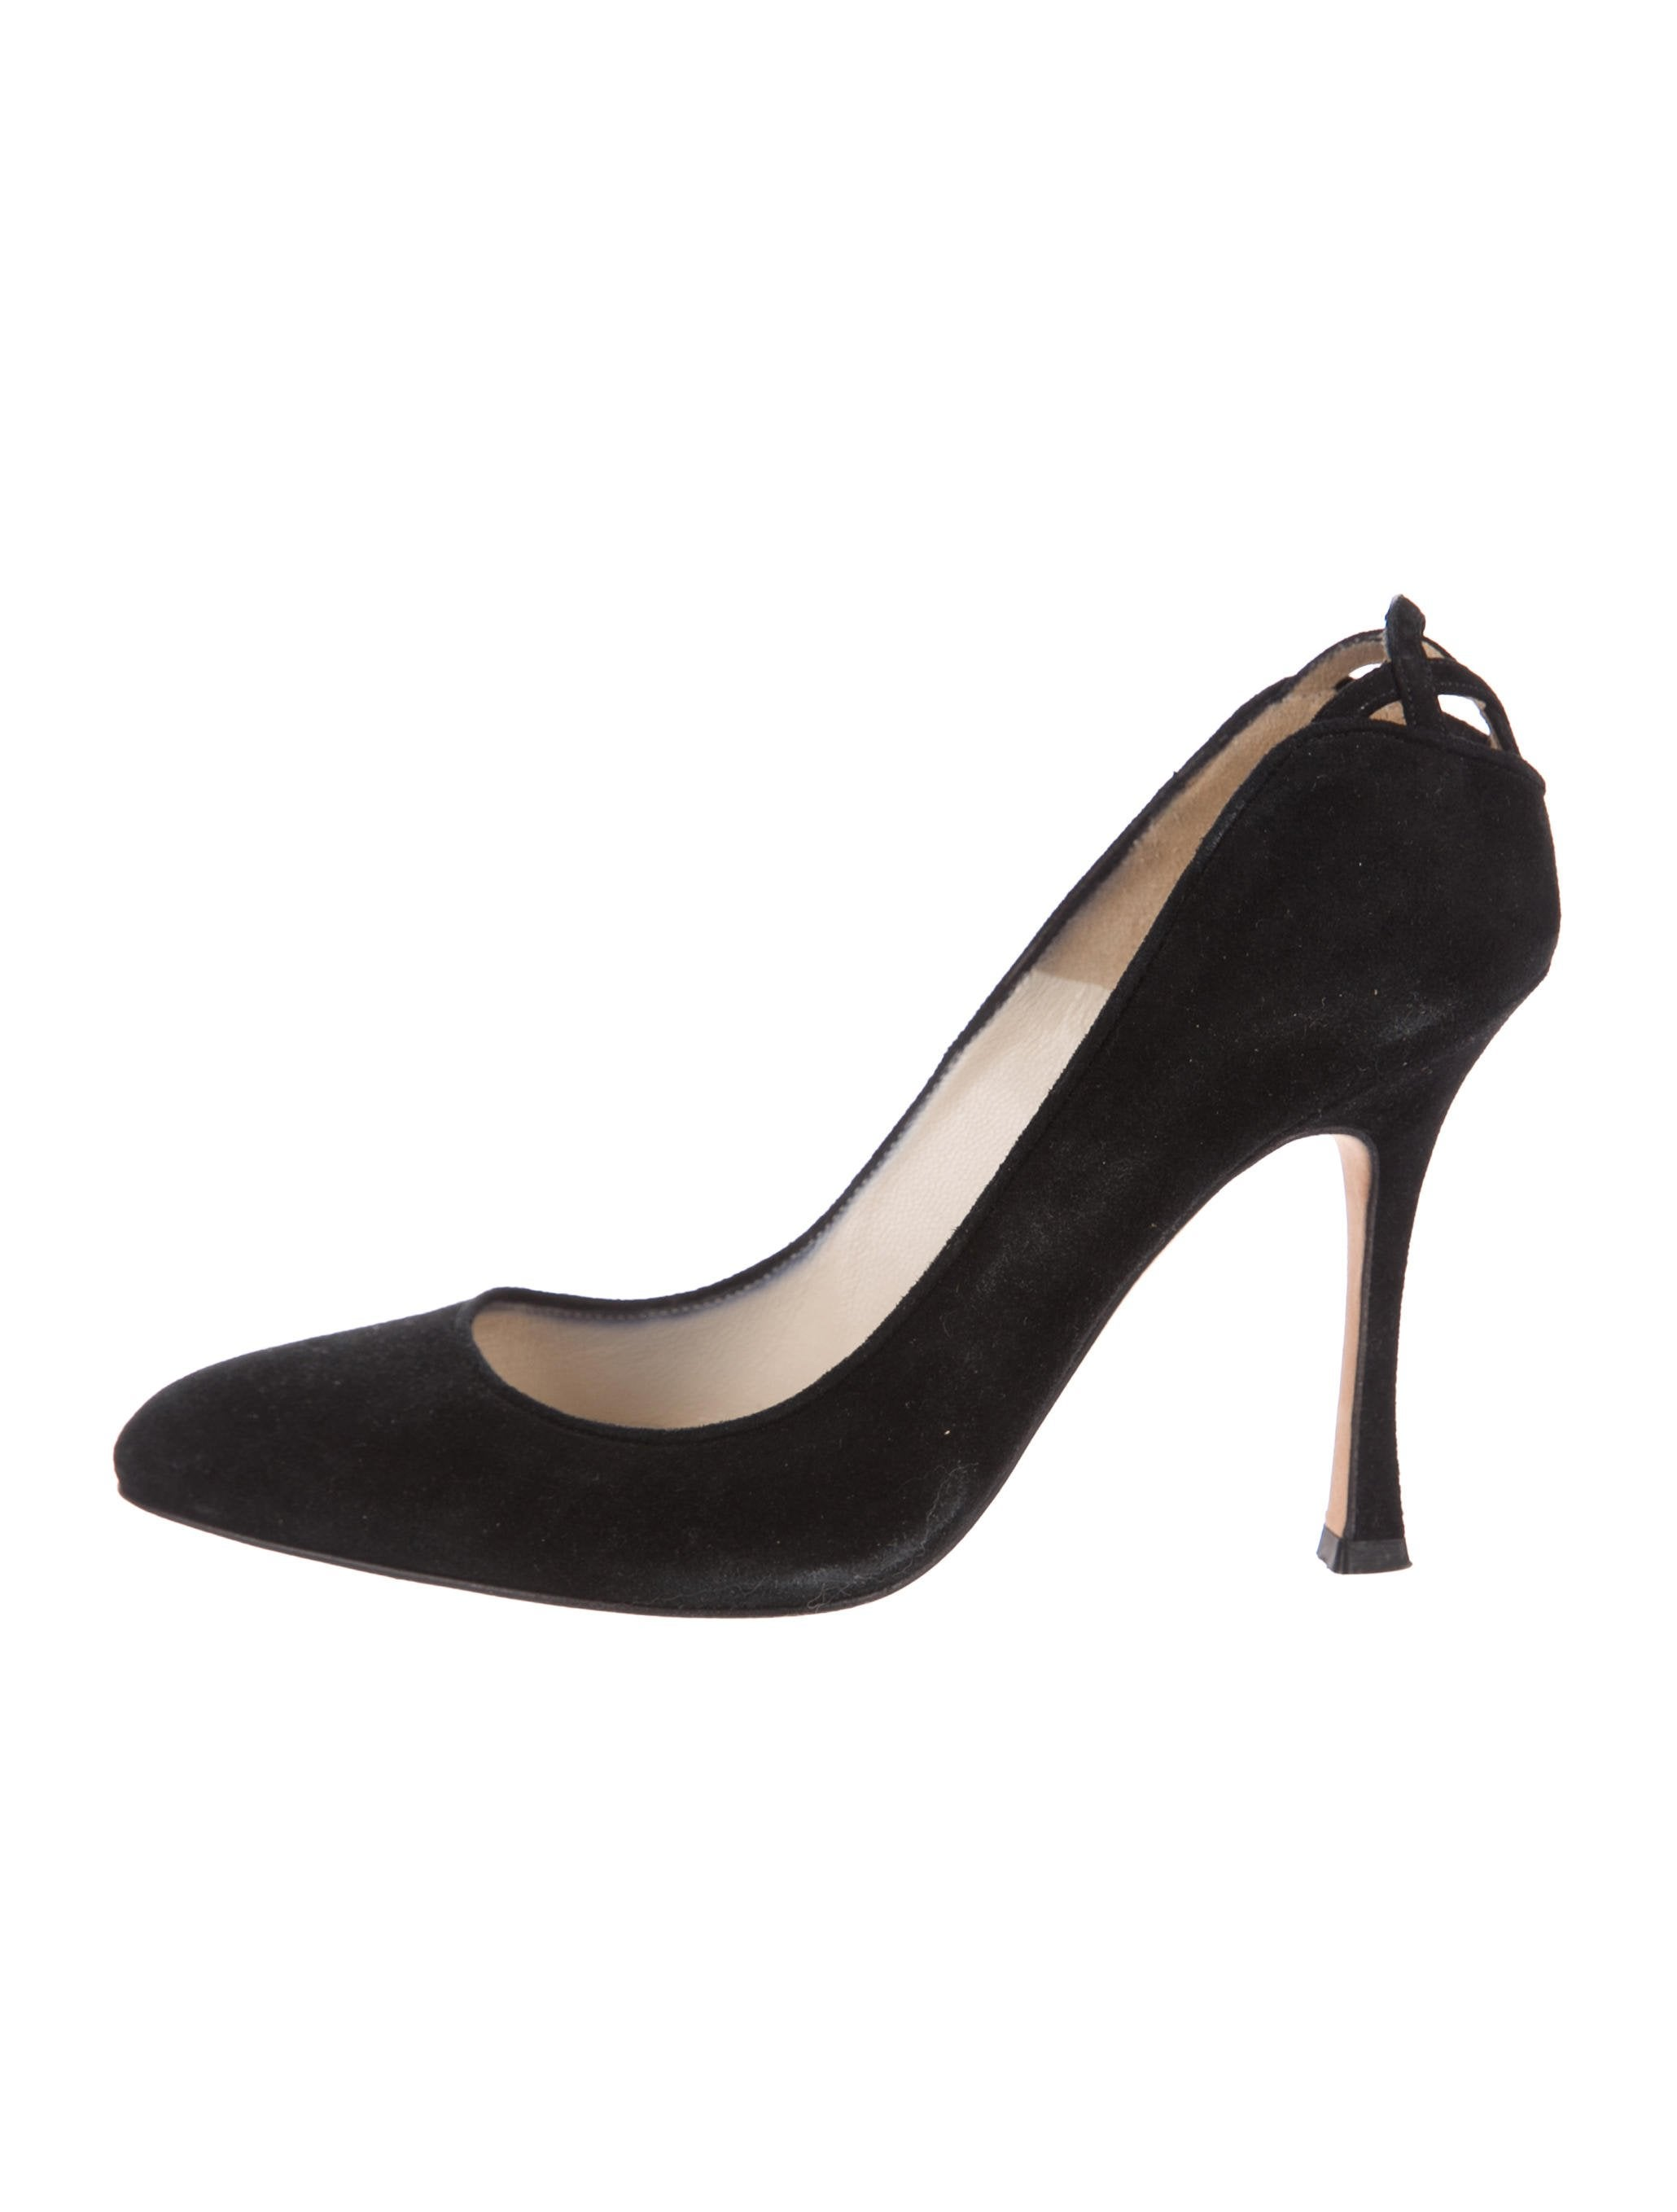 Brian Atwood Suede Cutout Pumps cheap view p0og38b